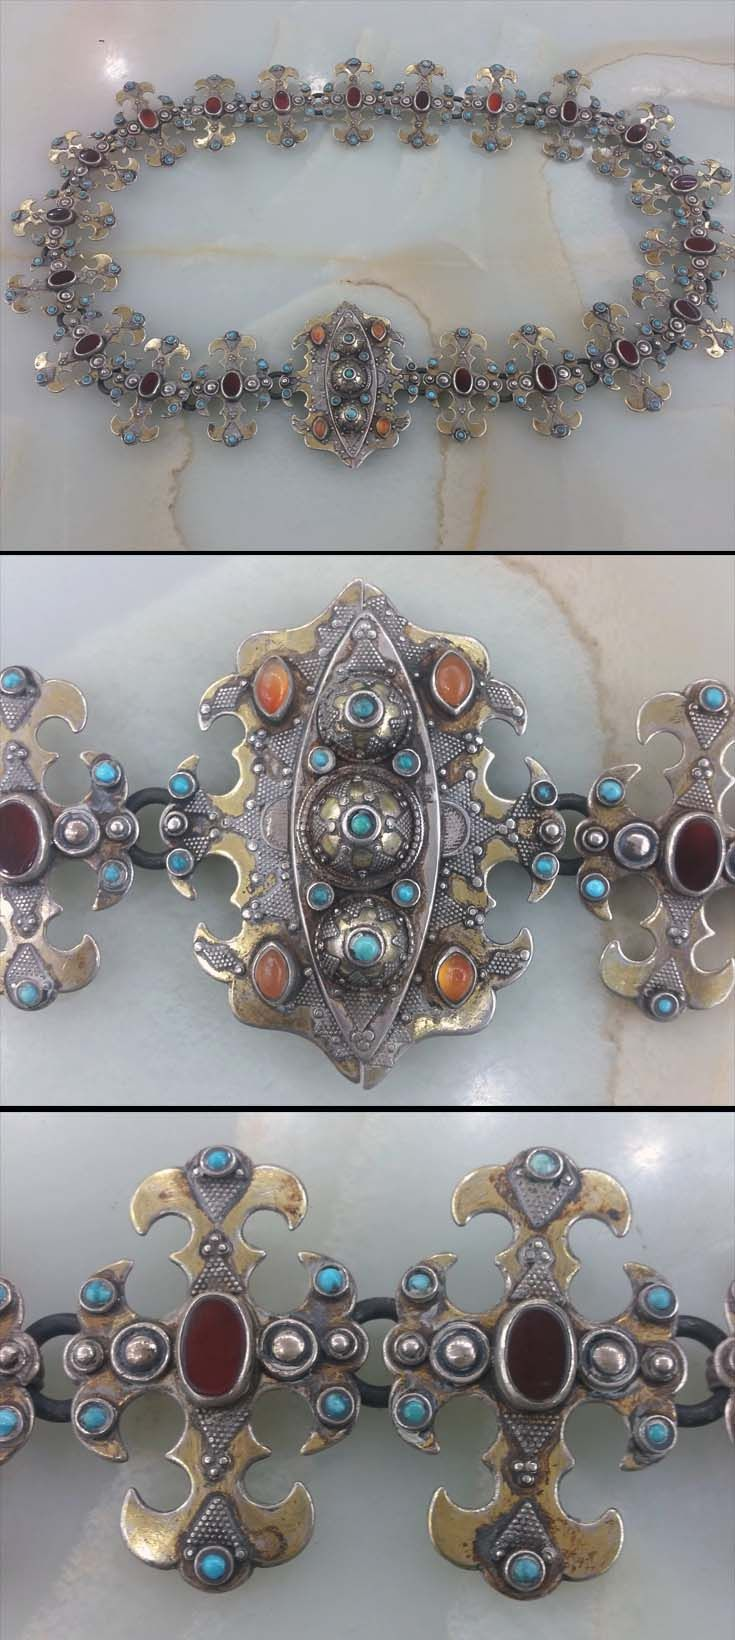 Kazakhstan | Belt; silver, partially gilded, carnelian and turquoise stones | ca. 1920s | 1'850$